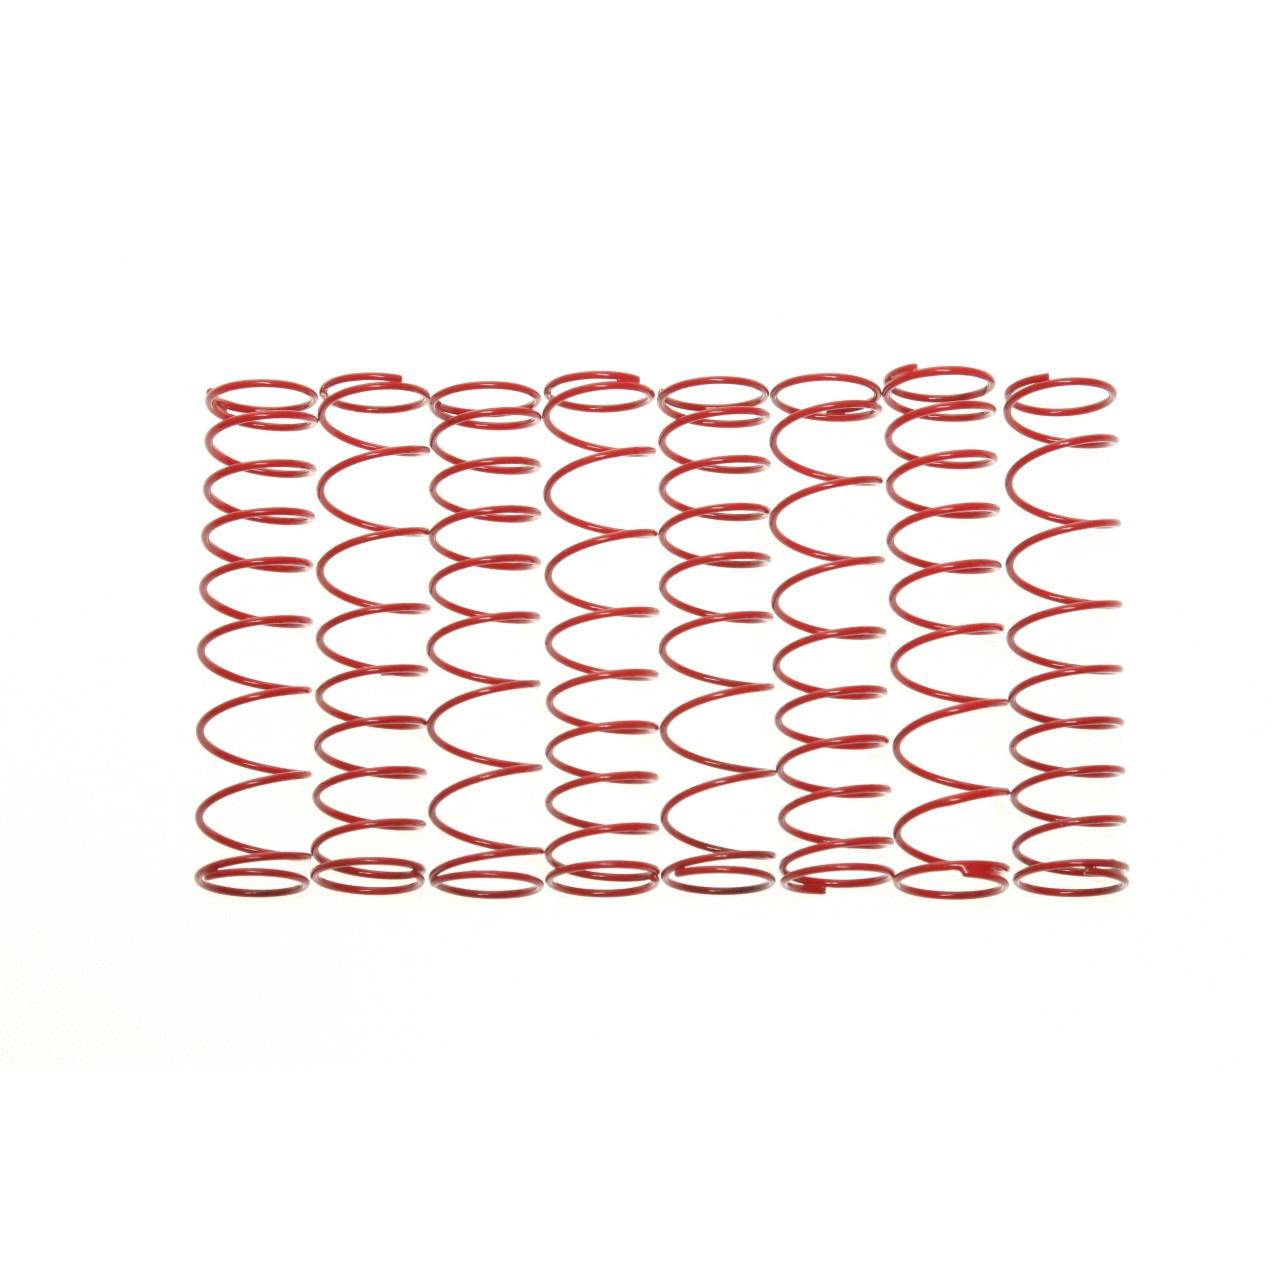 Traxxas T-MAXX E-MAXX Dual rate springs in Red.  8 Pack